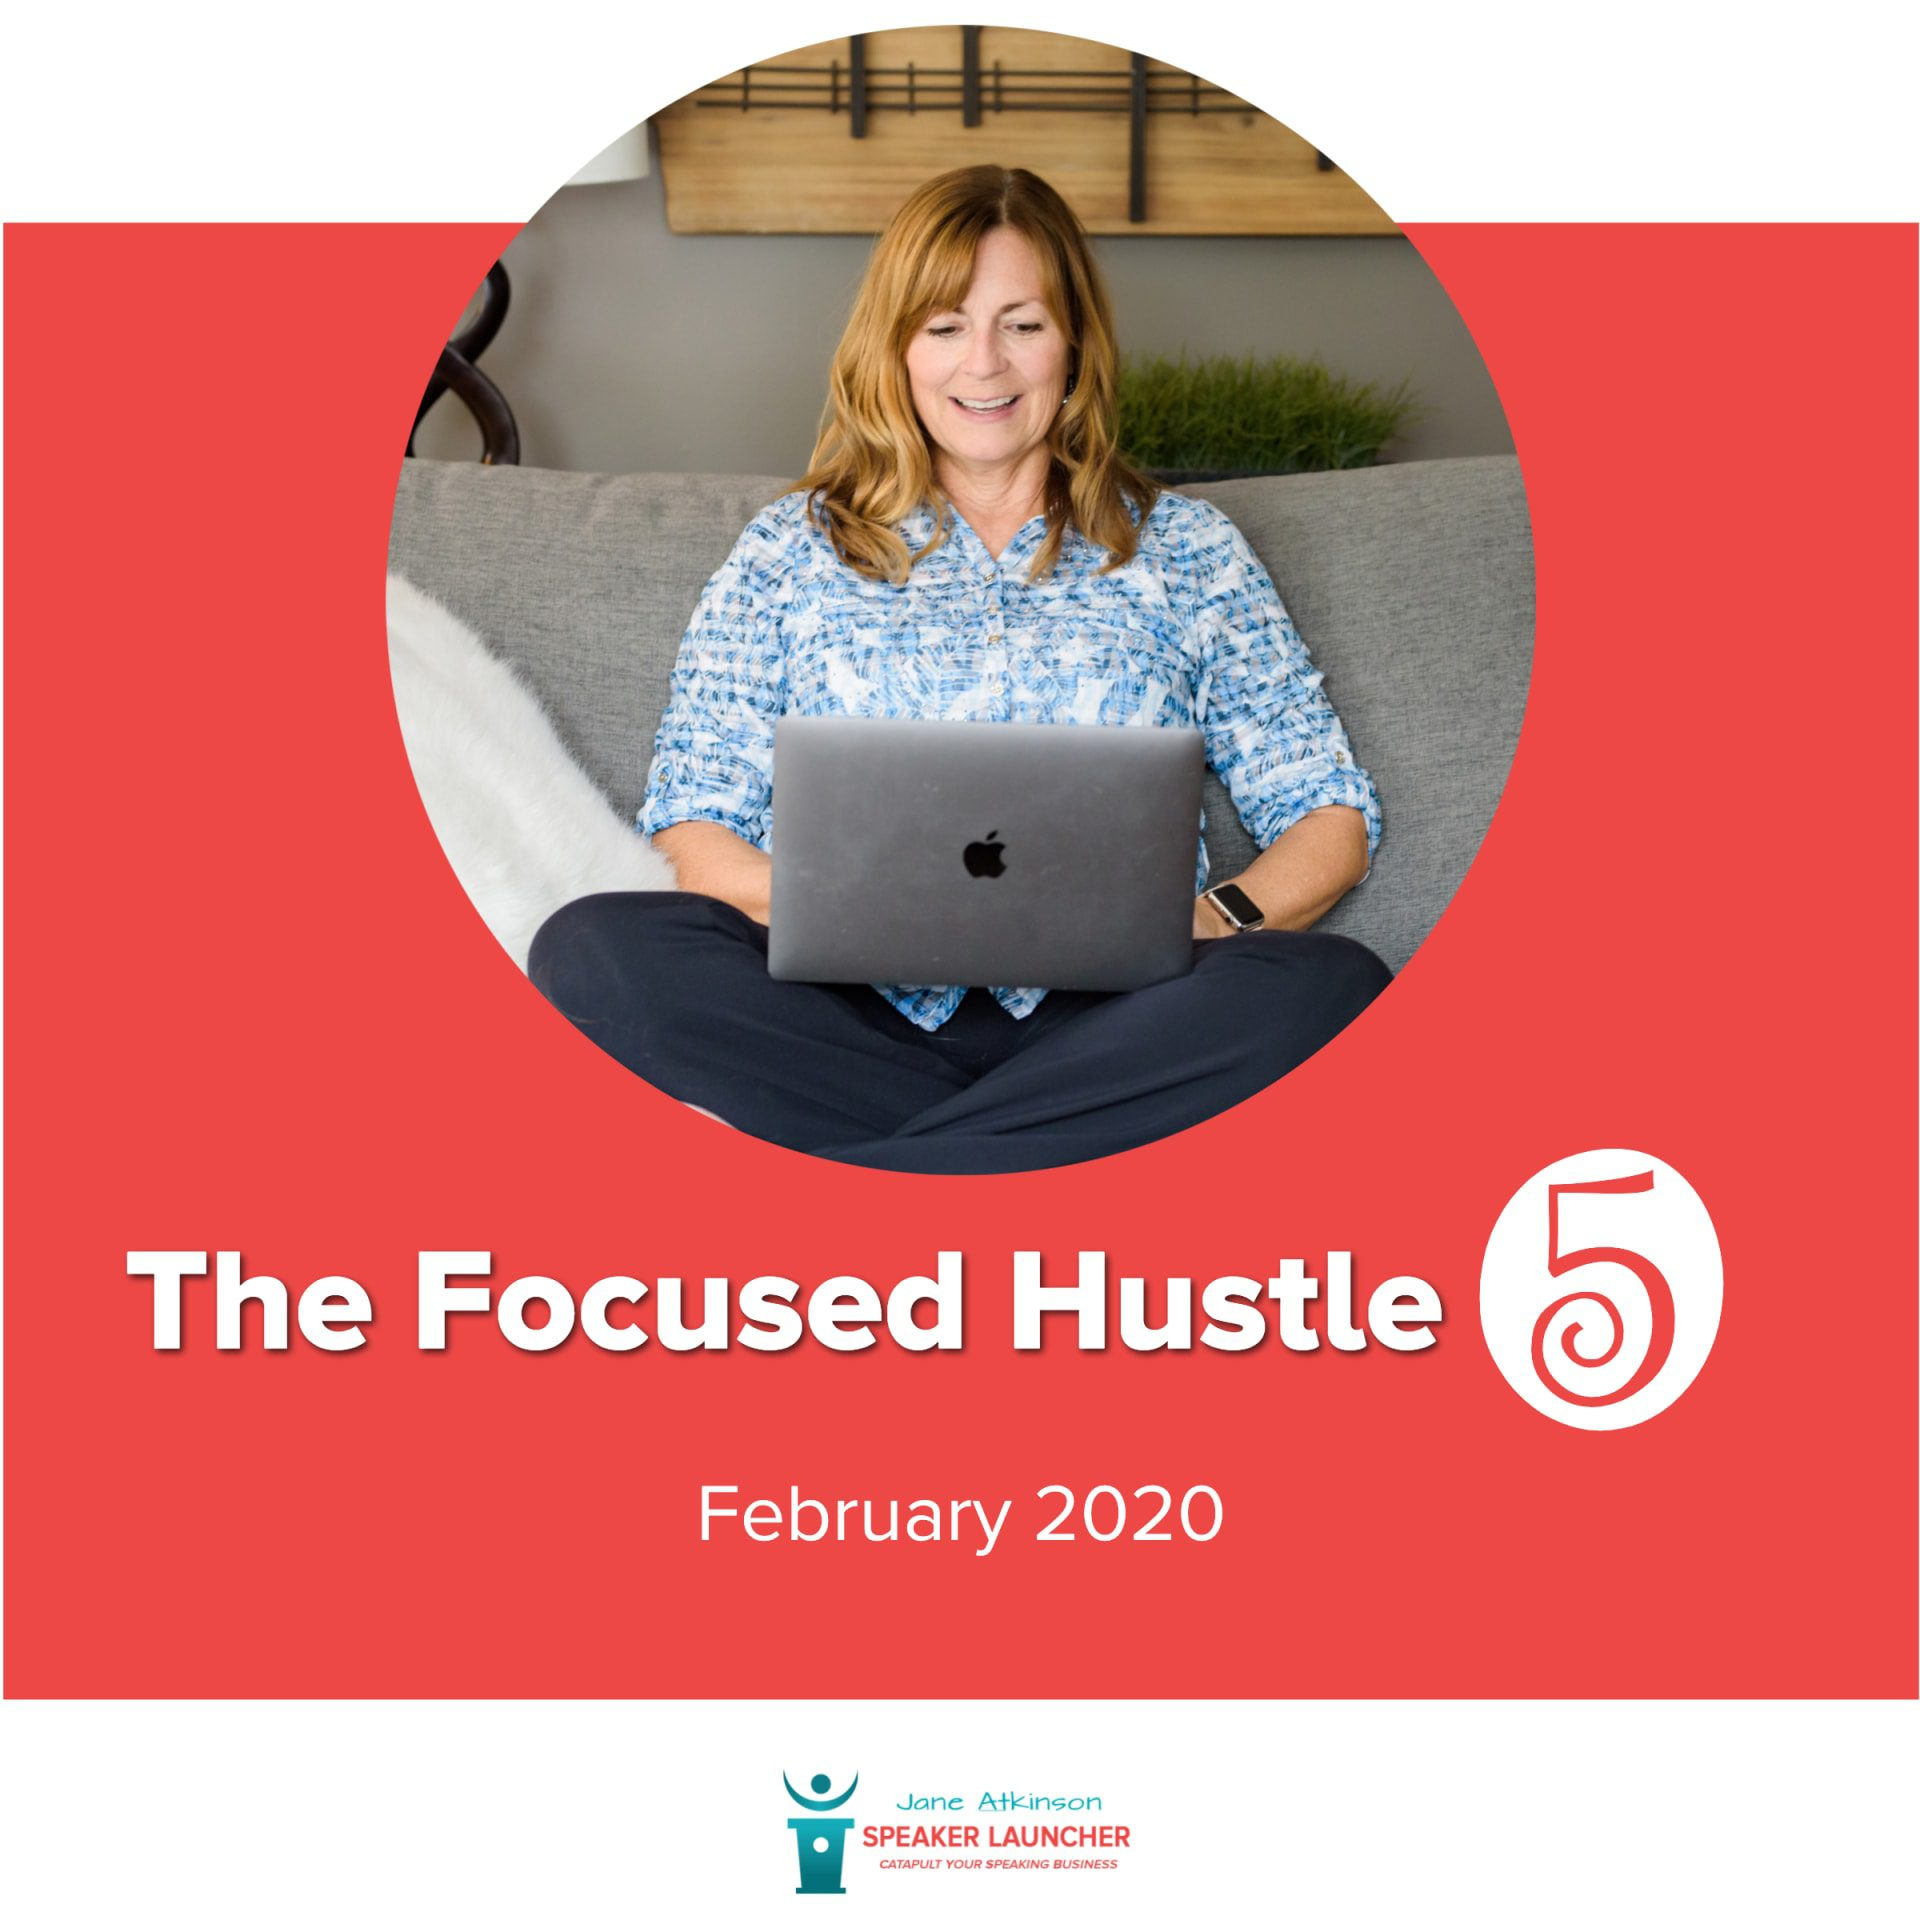 Focused Hustle February 2020